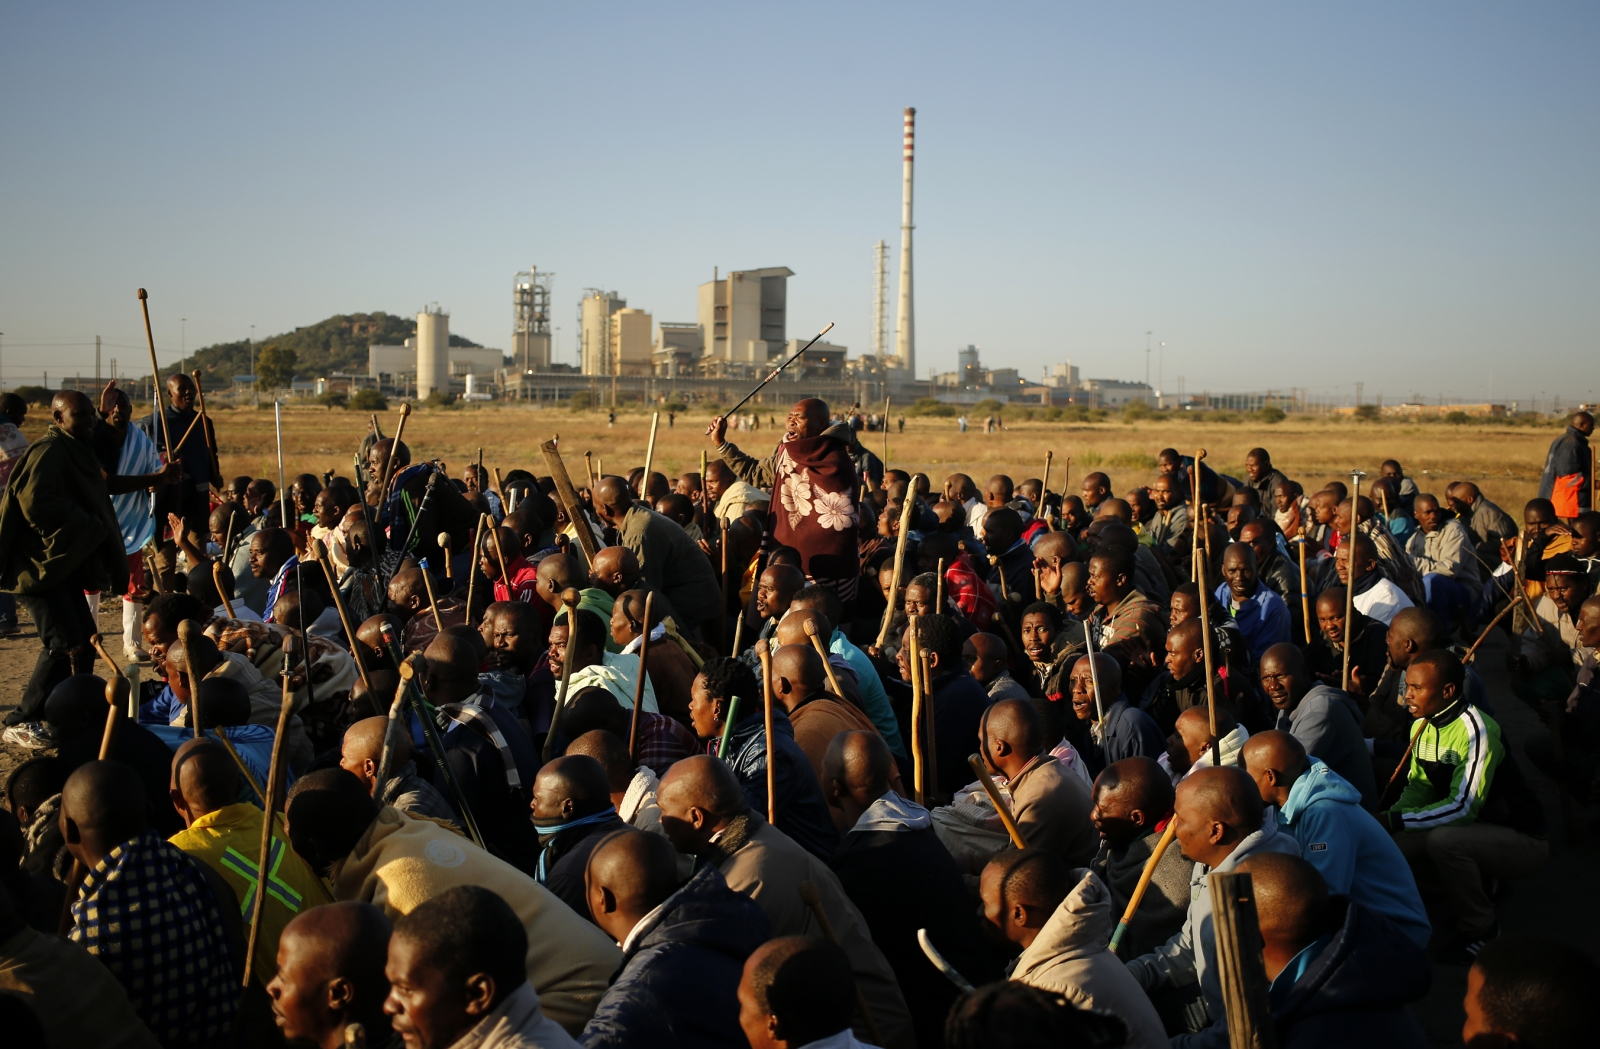 South African miners on strike chant slogans as they march in Nkaneng township outside the Lonmin mine in Rustenburg May 14, 2014